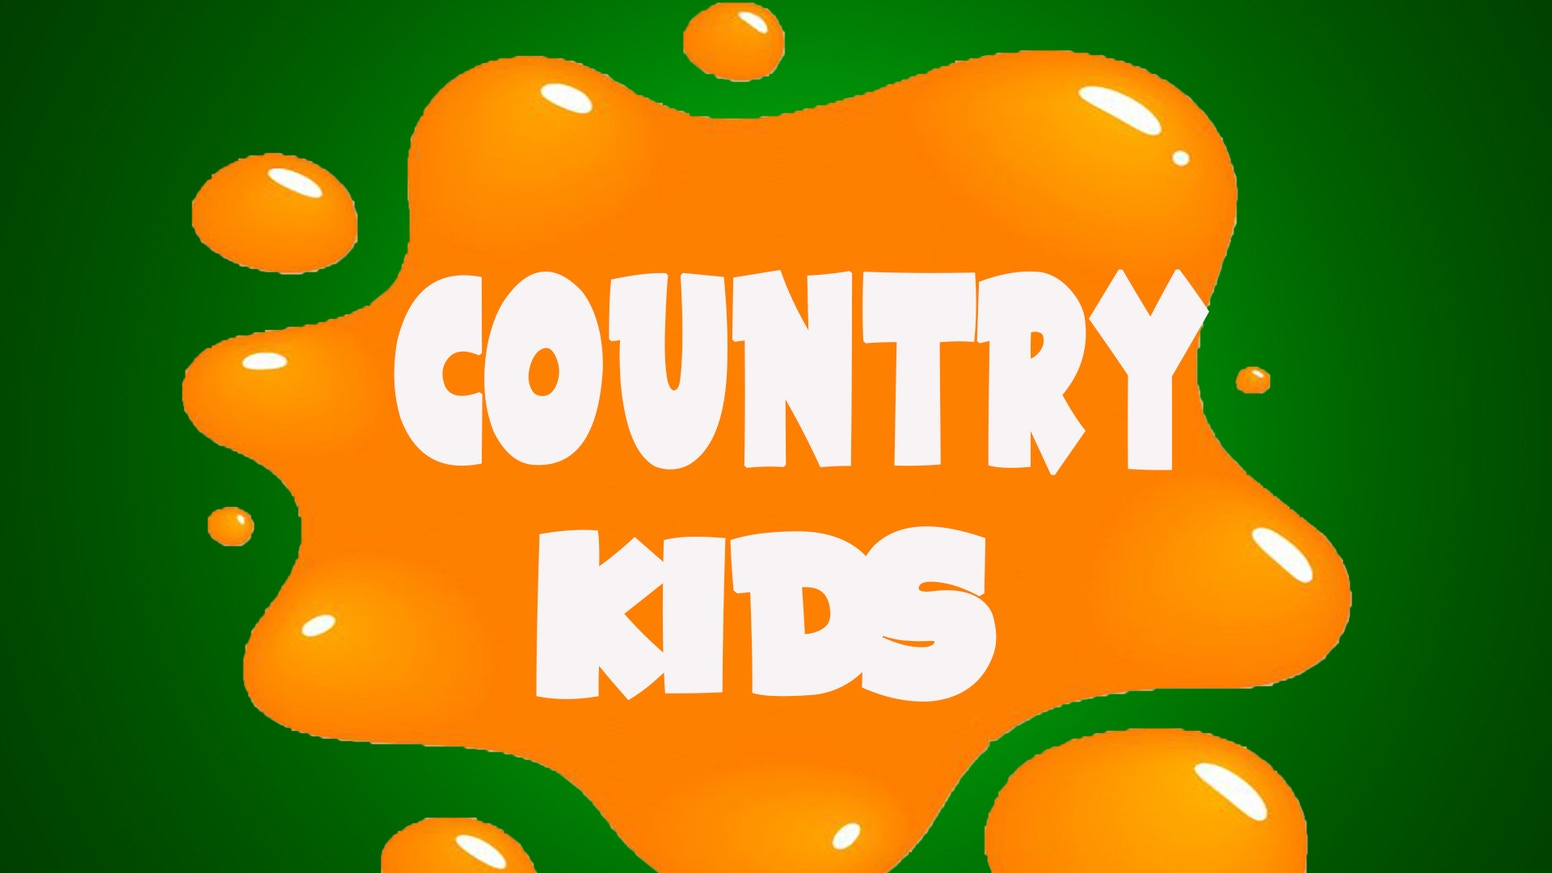 Country Kids travel from Auckland to Matamata Intermediate as part of a Project Directed by Morgan Steiner and Produced by Gavin Poole.